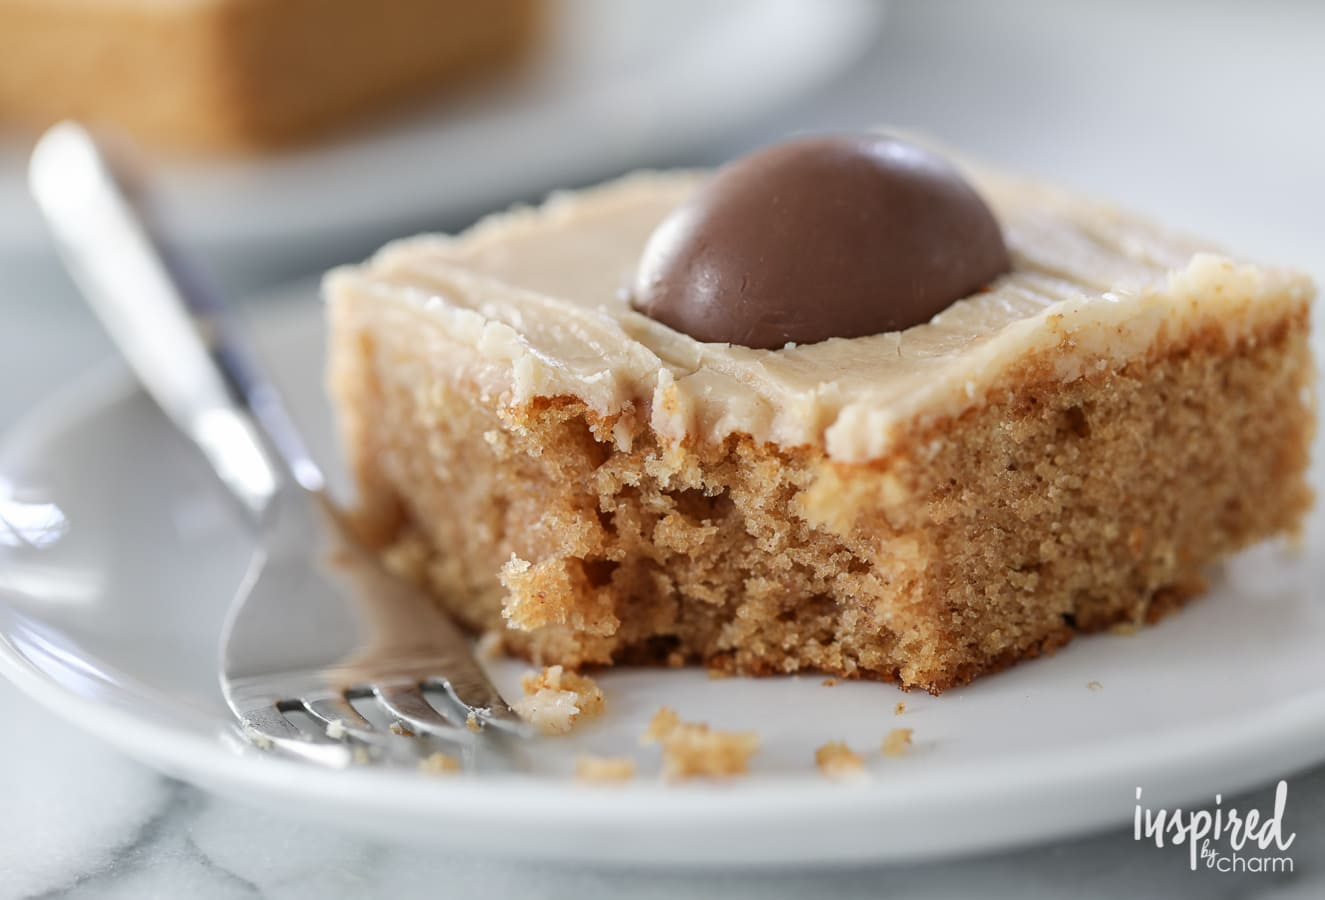 Peanut Butter Dessert Recipes